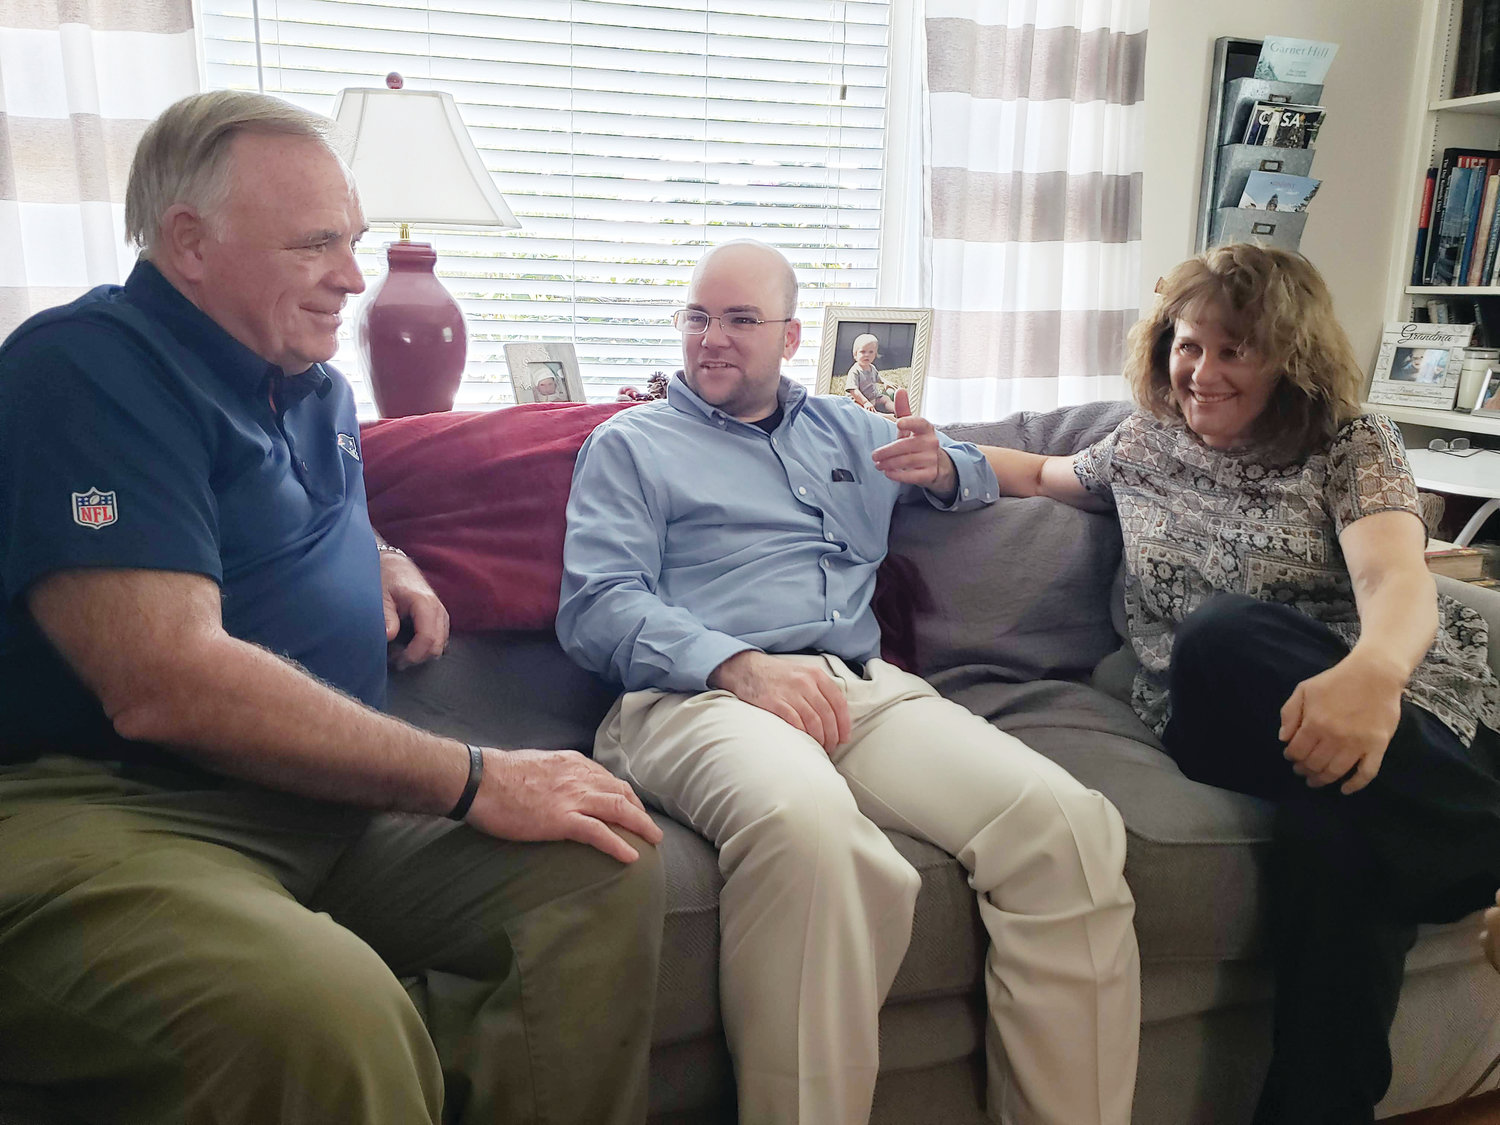 Deacon Brendan Rowley visits with his parents, James and Deborah Rowley, in the family's Narraganset home a couple of weeks before his ordination.